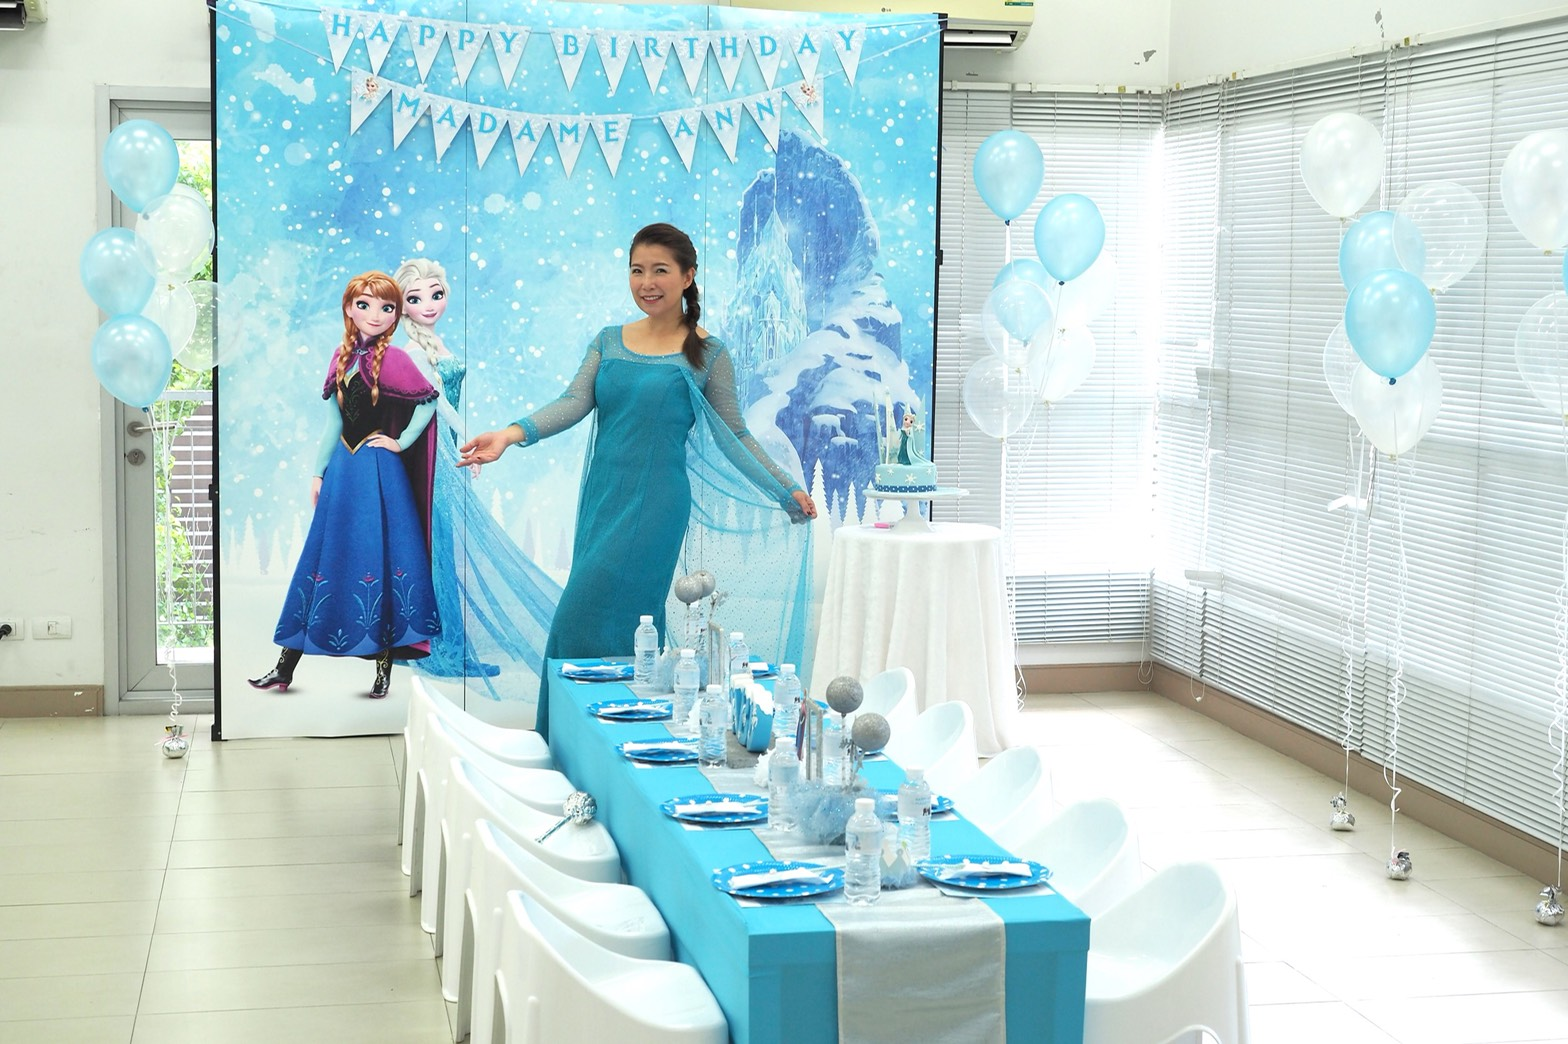 Elsa from Frozen Birthday party - cute princess themed party ideas for your girls' next birthday including backdrop, balloons, party decoration,princess mascot, games and more fun stuffs!